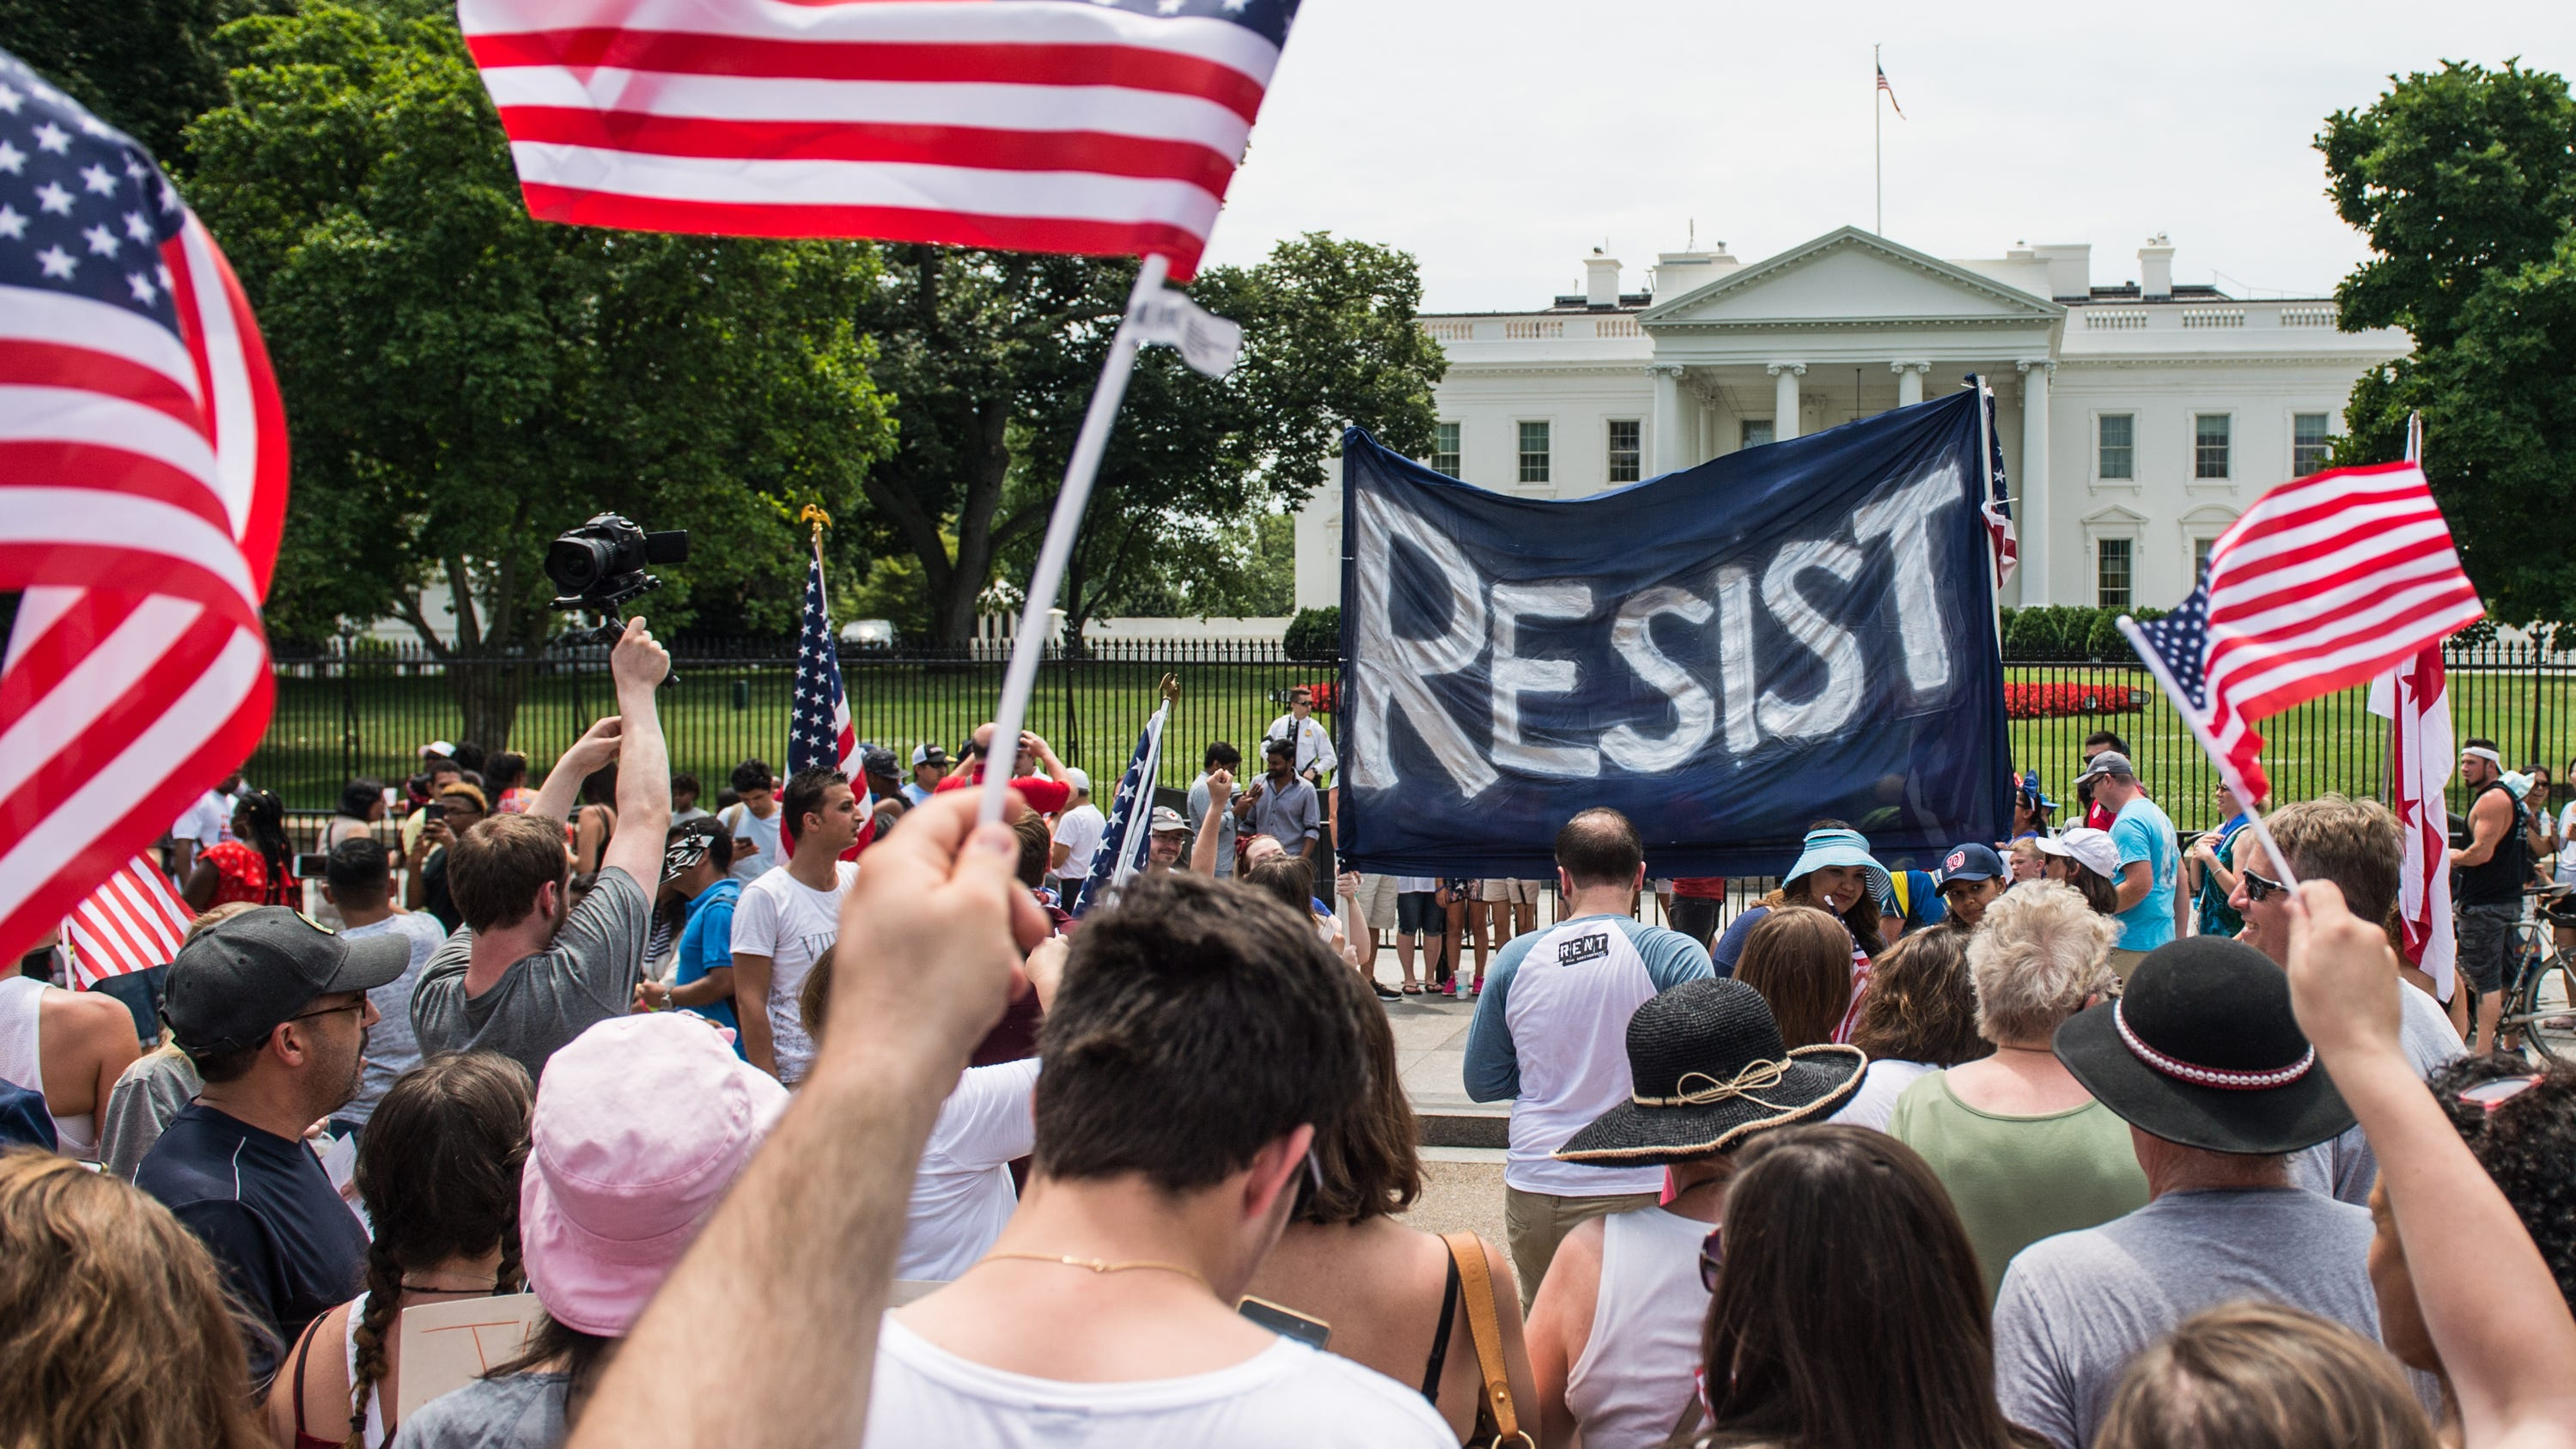 Protesters gather near the White House in Washington on July, 4, 2017.